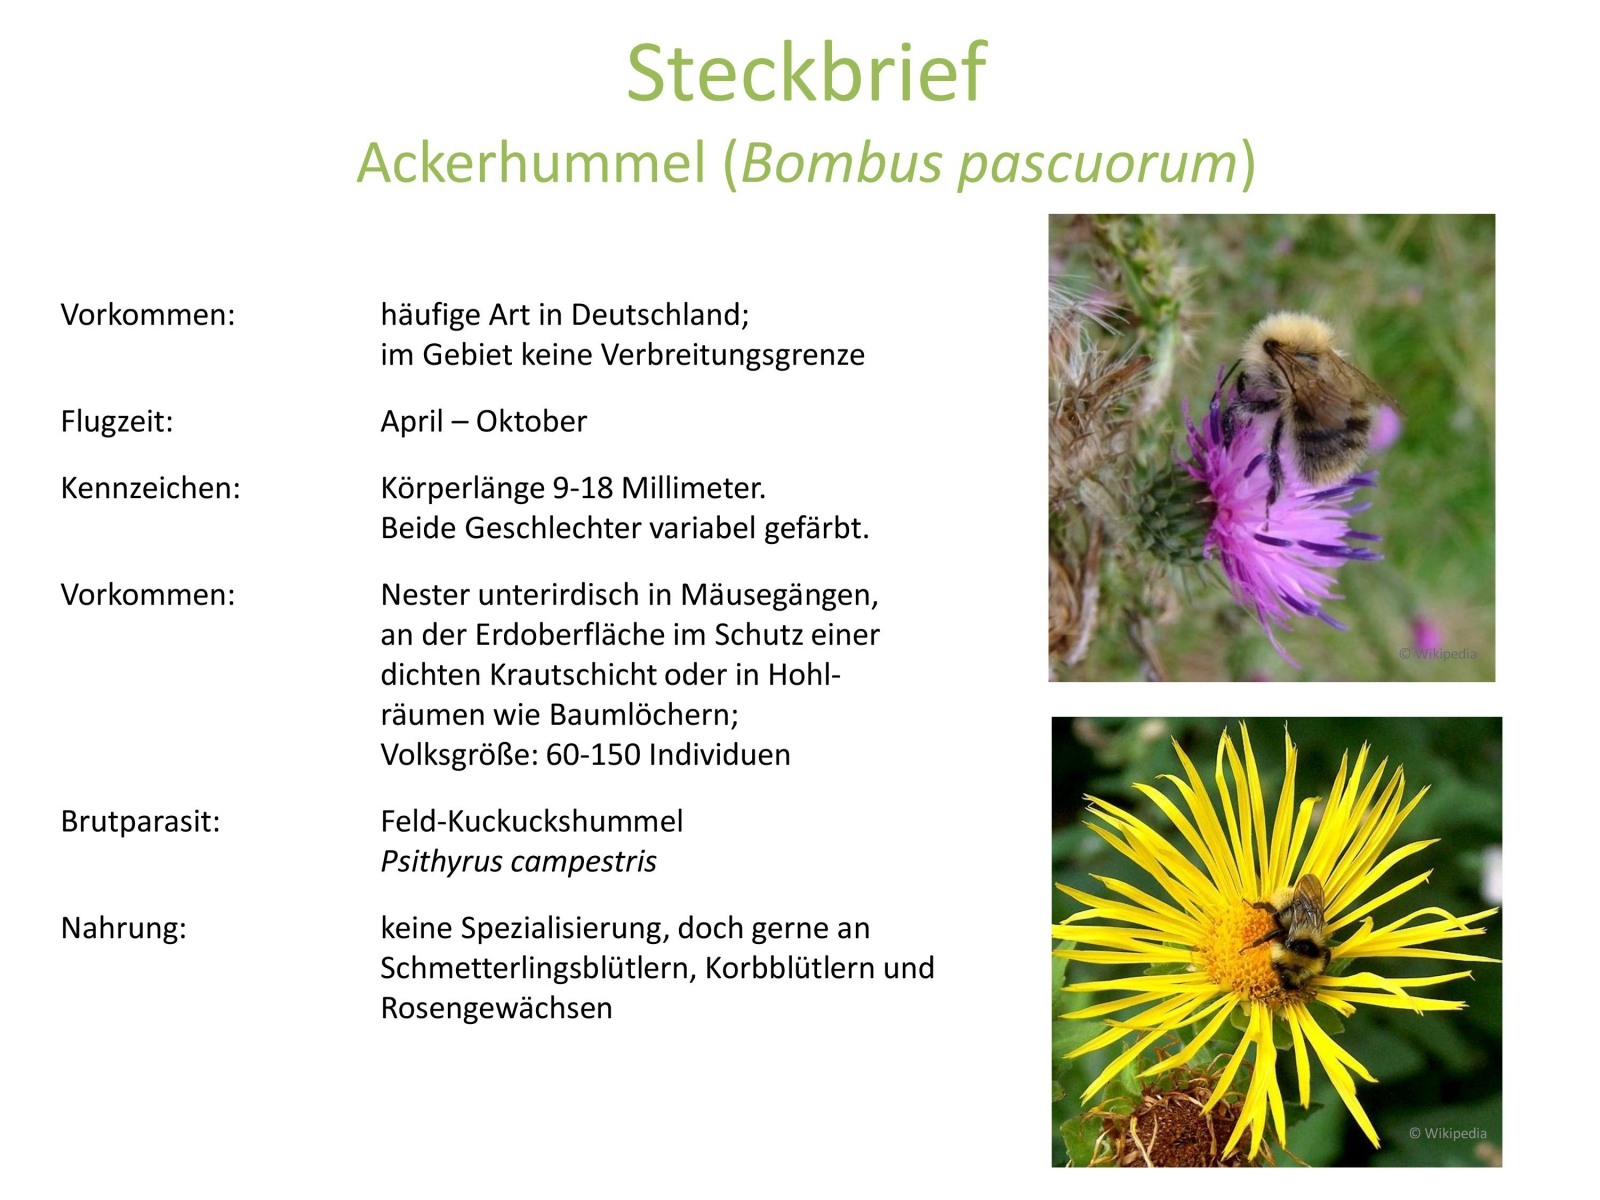 wildbienen_steckbrief_3.jpg